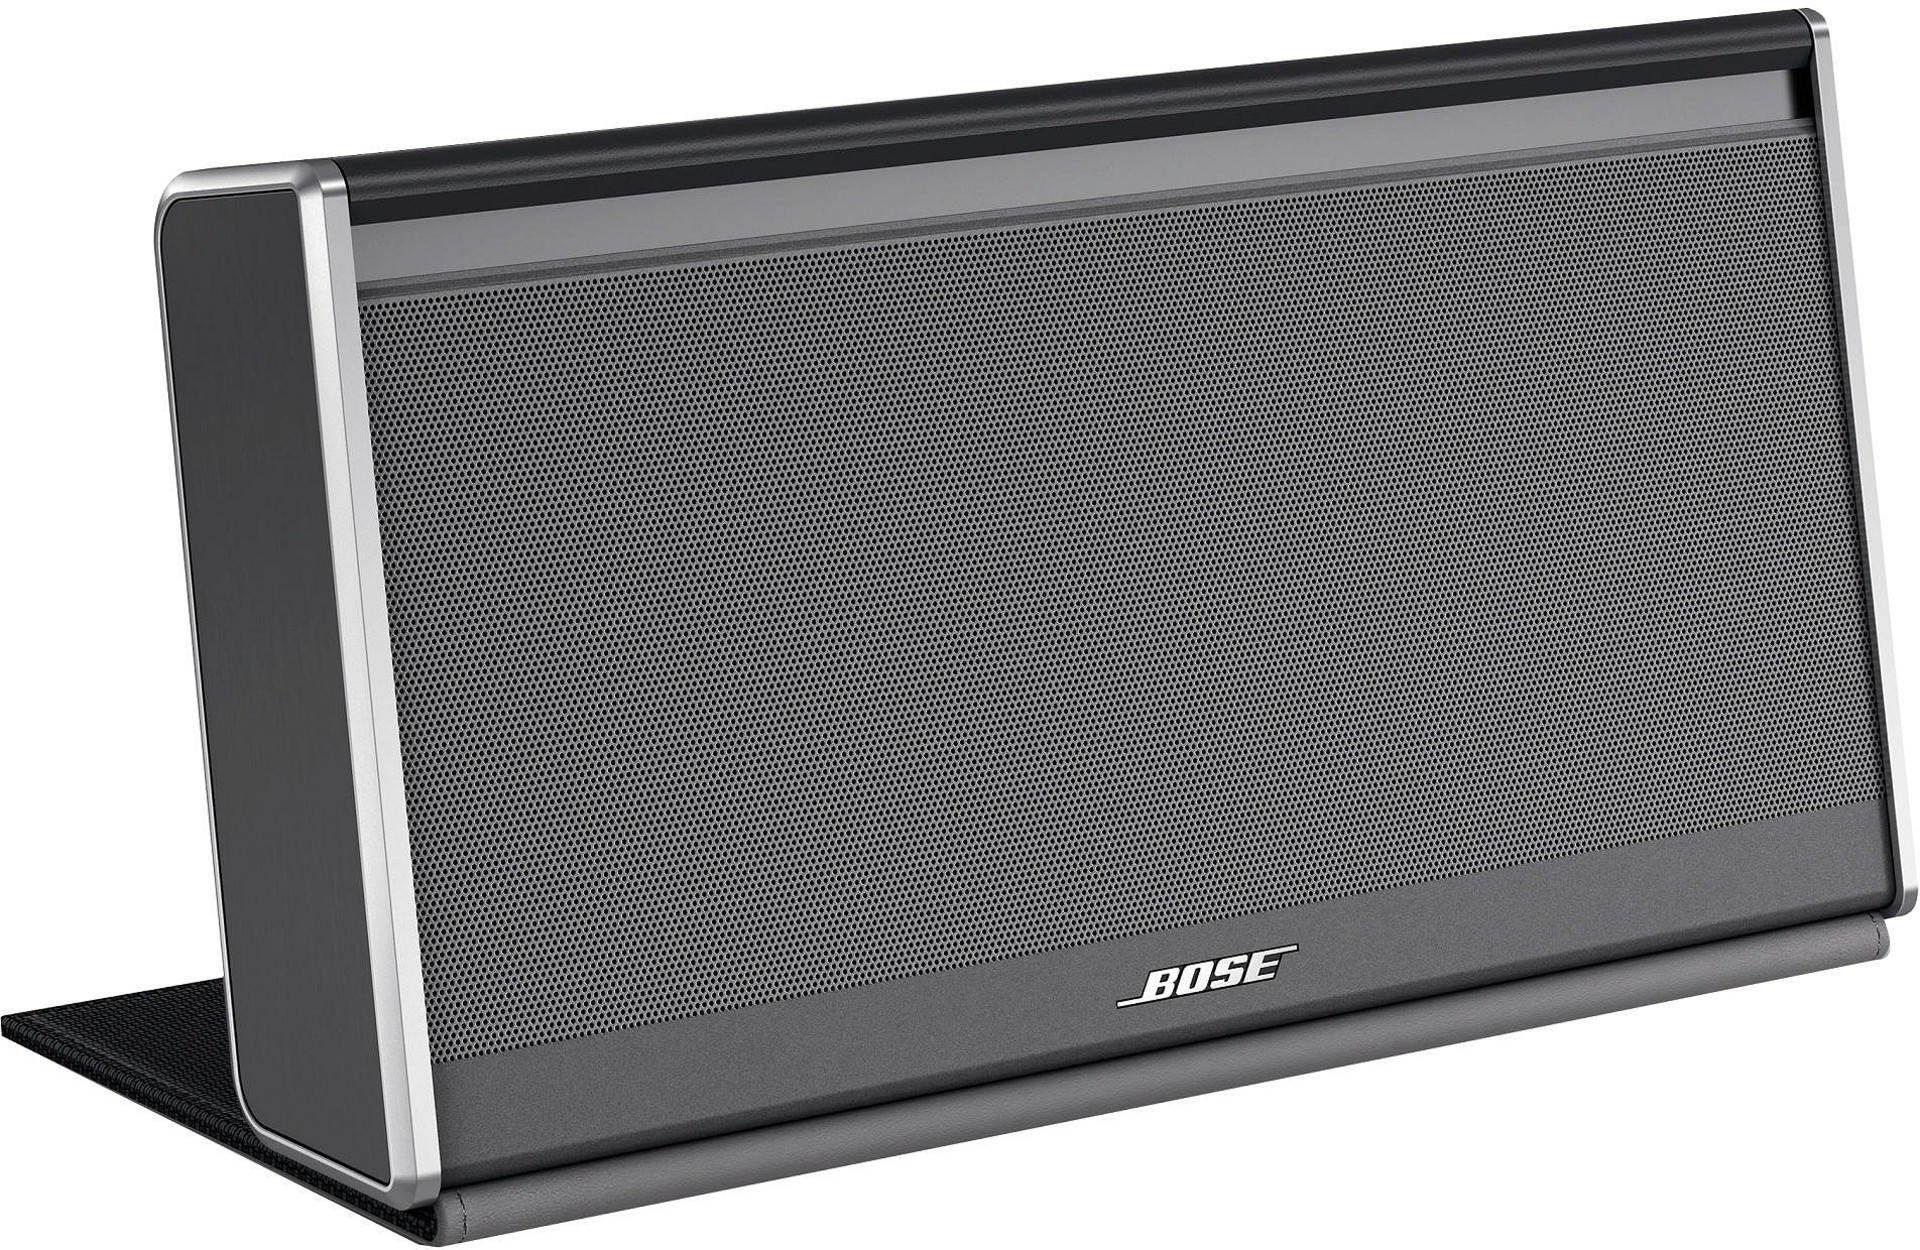 avis enceinte bose soundlink bluetooth iii. Black Bedroom Furniture Sets. Home Design Ideas